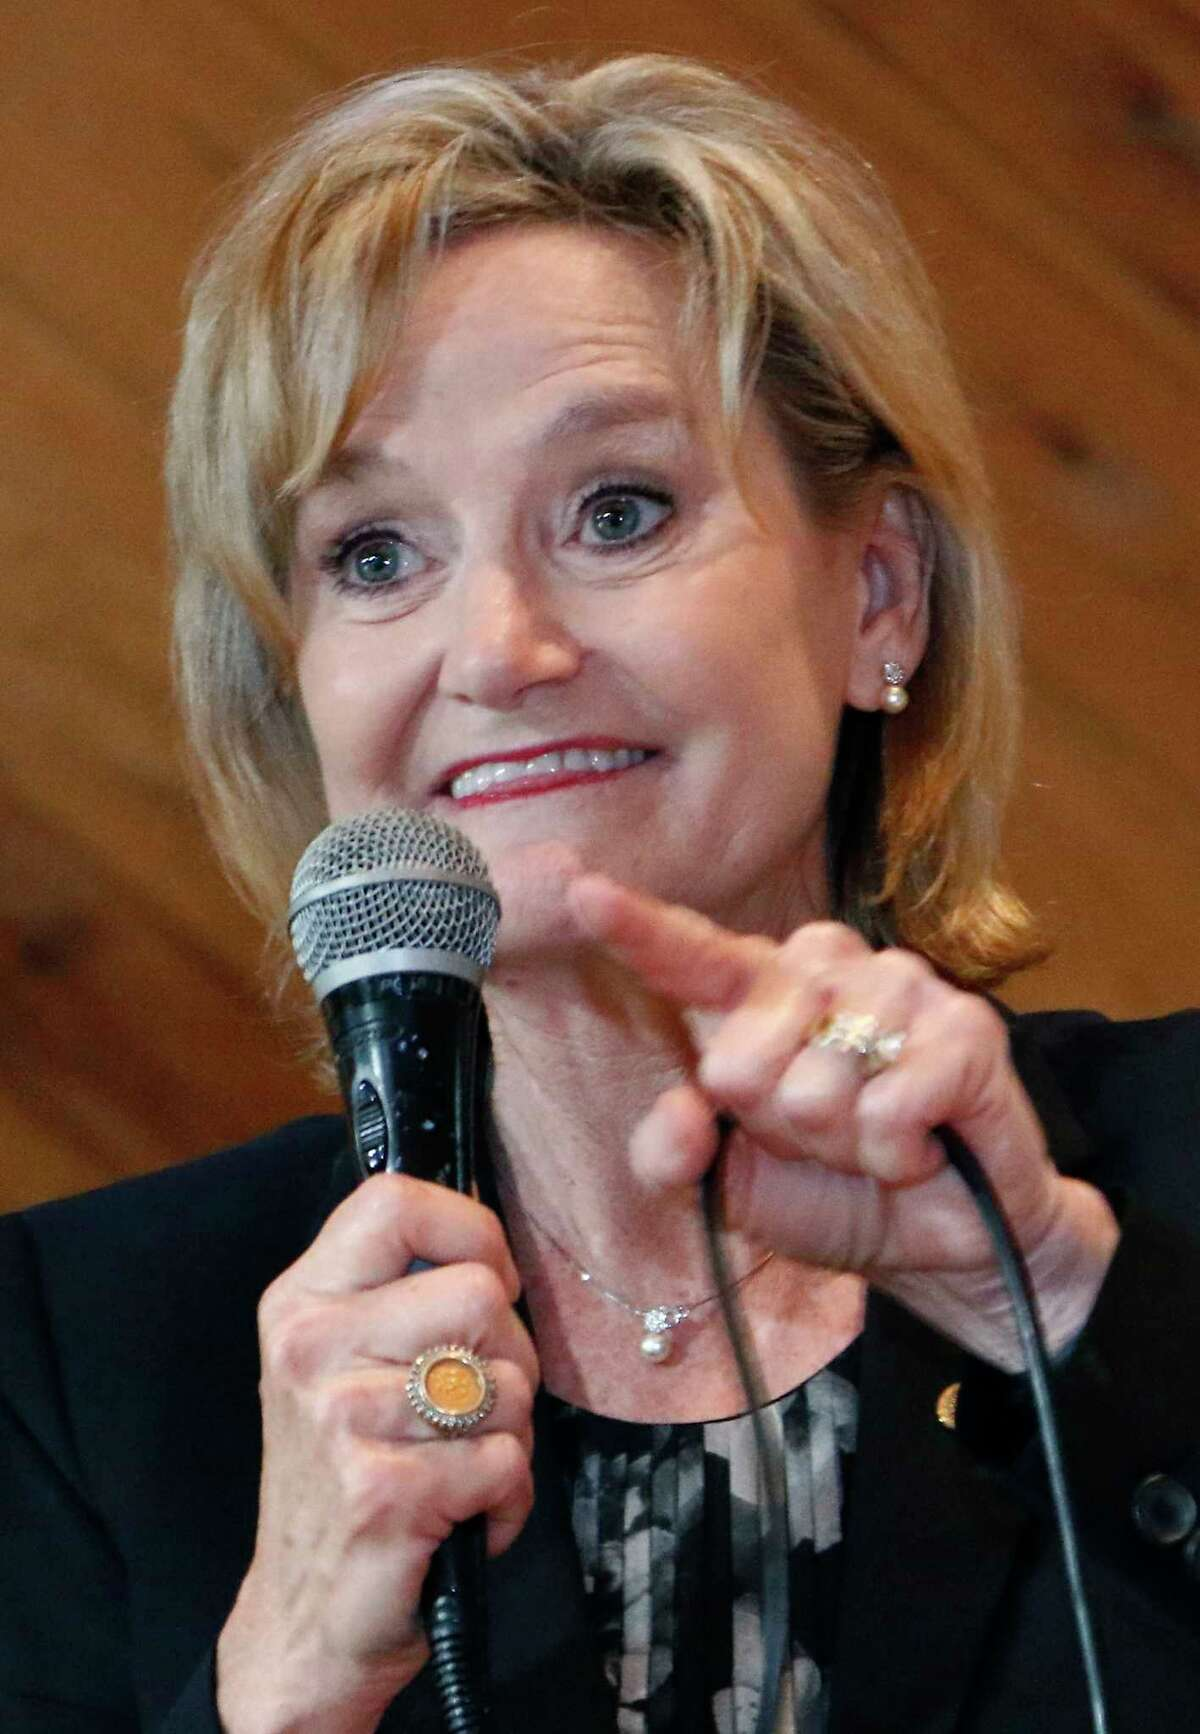 """FILE - In this Nov. 5, 2018, file photo, U.S. Sen. Cindy Hyde-Smith, R-Miss., addresses a gathering of supporters in Jackson, Miss. The last U.S. Senate race of the midterms was coming to a close Tuesday as Mississippi residents chose between Hyde-Smith, a white Republican Senate appointee whose """"public hanging"""" comments angered many people, and Mike Espy, a black Democrat who was agriculture secretary when Bill Clinton was in the White House."""